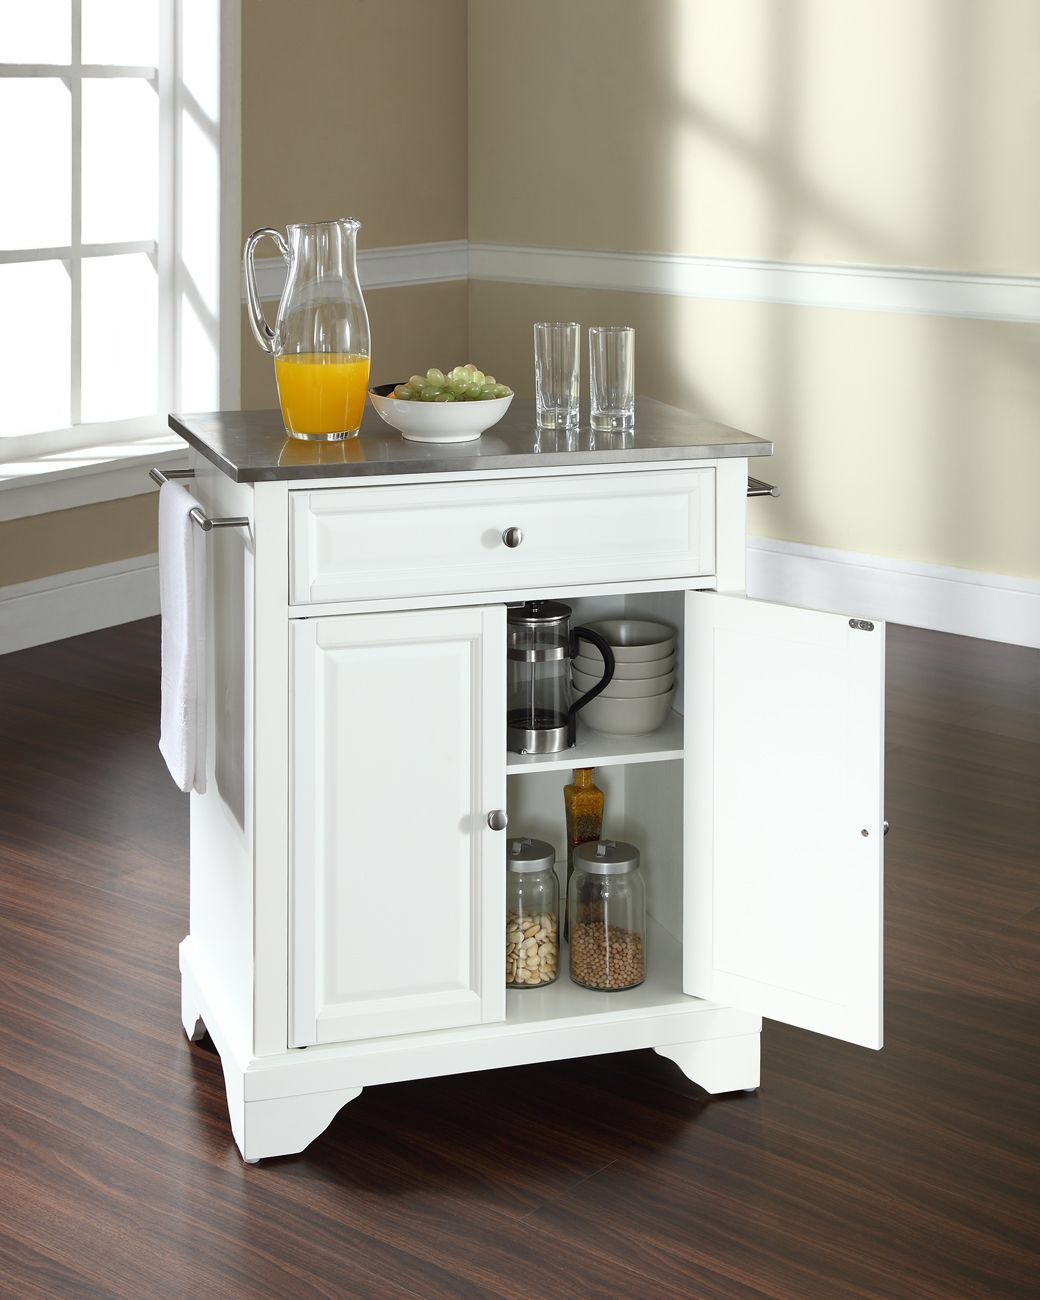 LaFayette Kitchen Island with Stainless Steel Top | Home | Pinterest ...